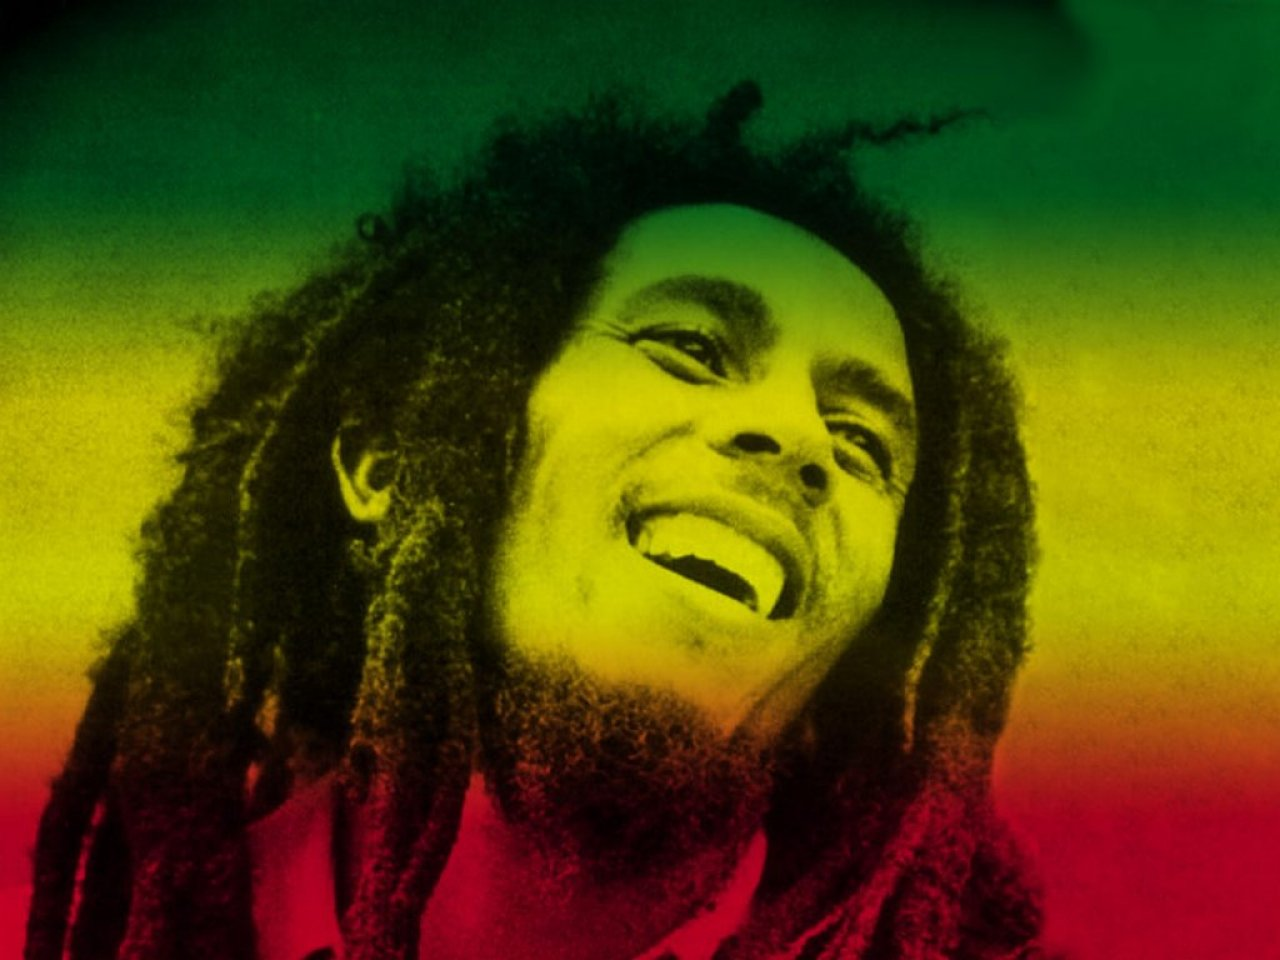 images of images of astronomy world bob marley three little birds wallpaper wallpaper